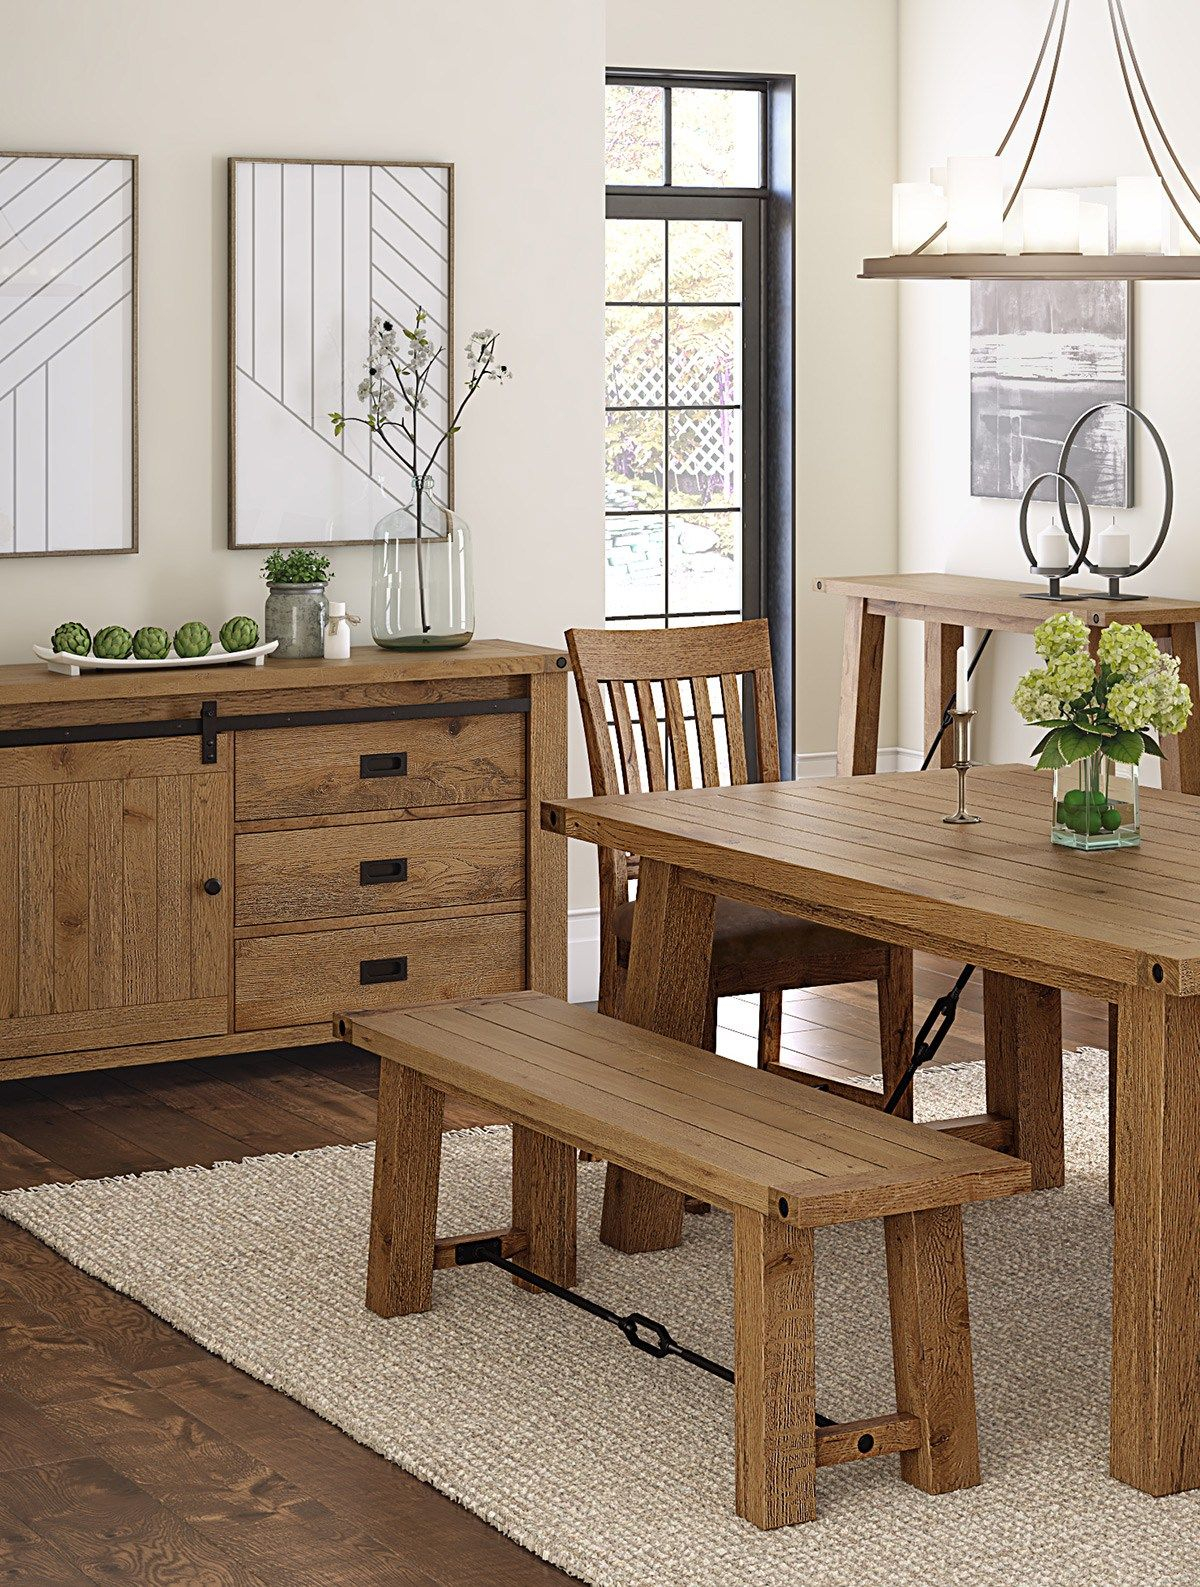 Dining Room Design Storage And Display Options Barn Doors for size 1200 X 1587